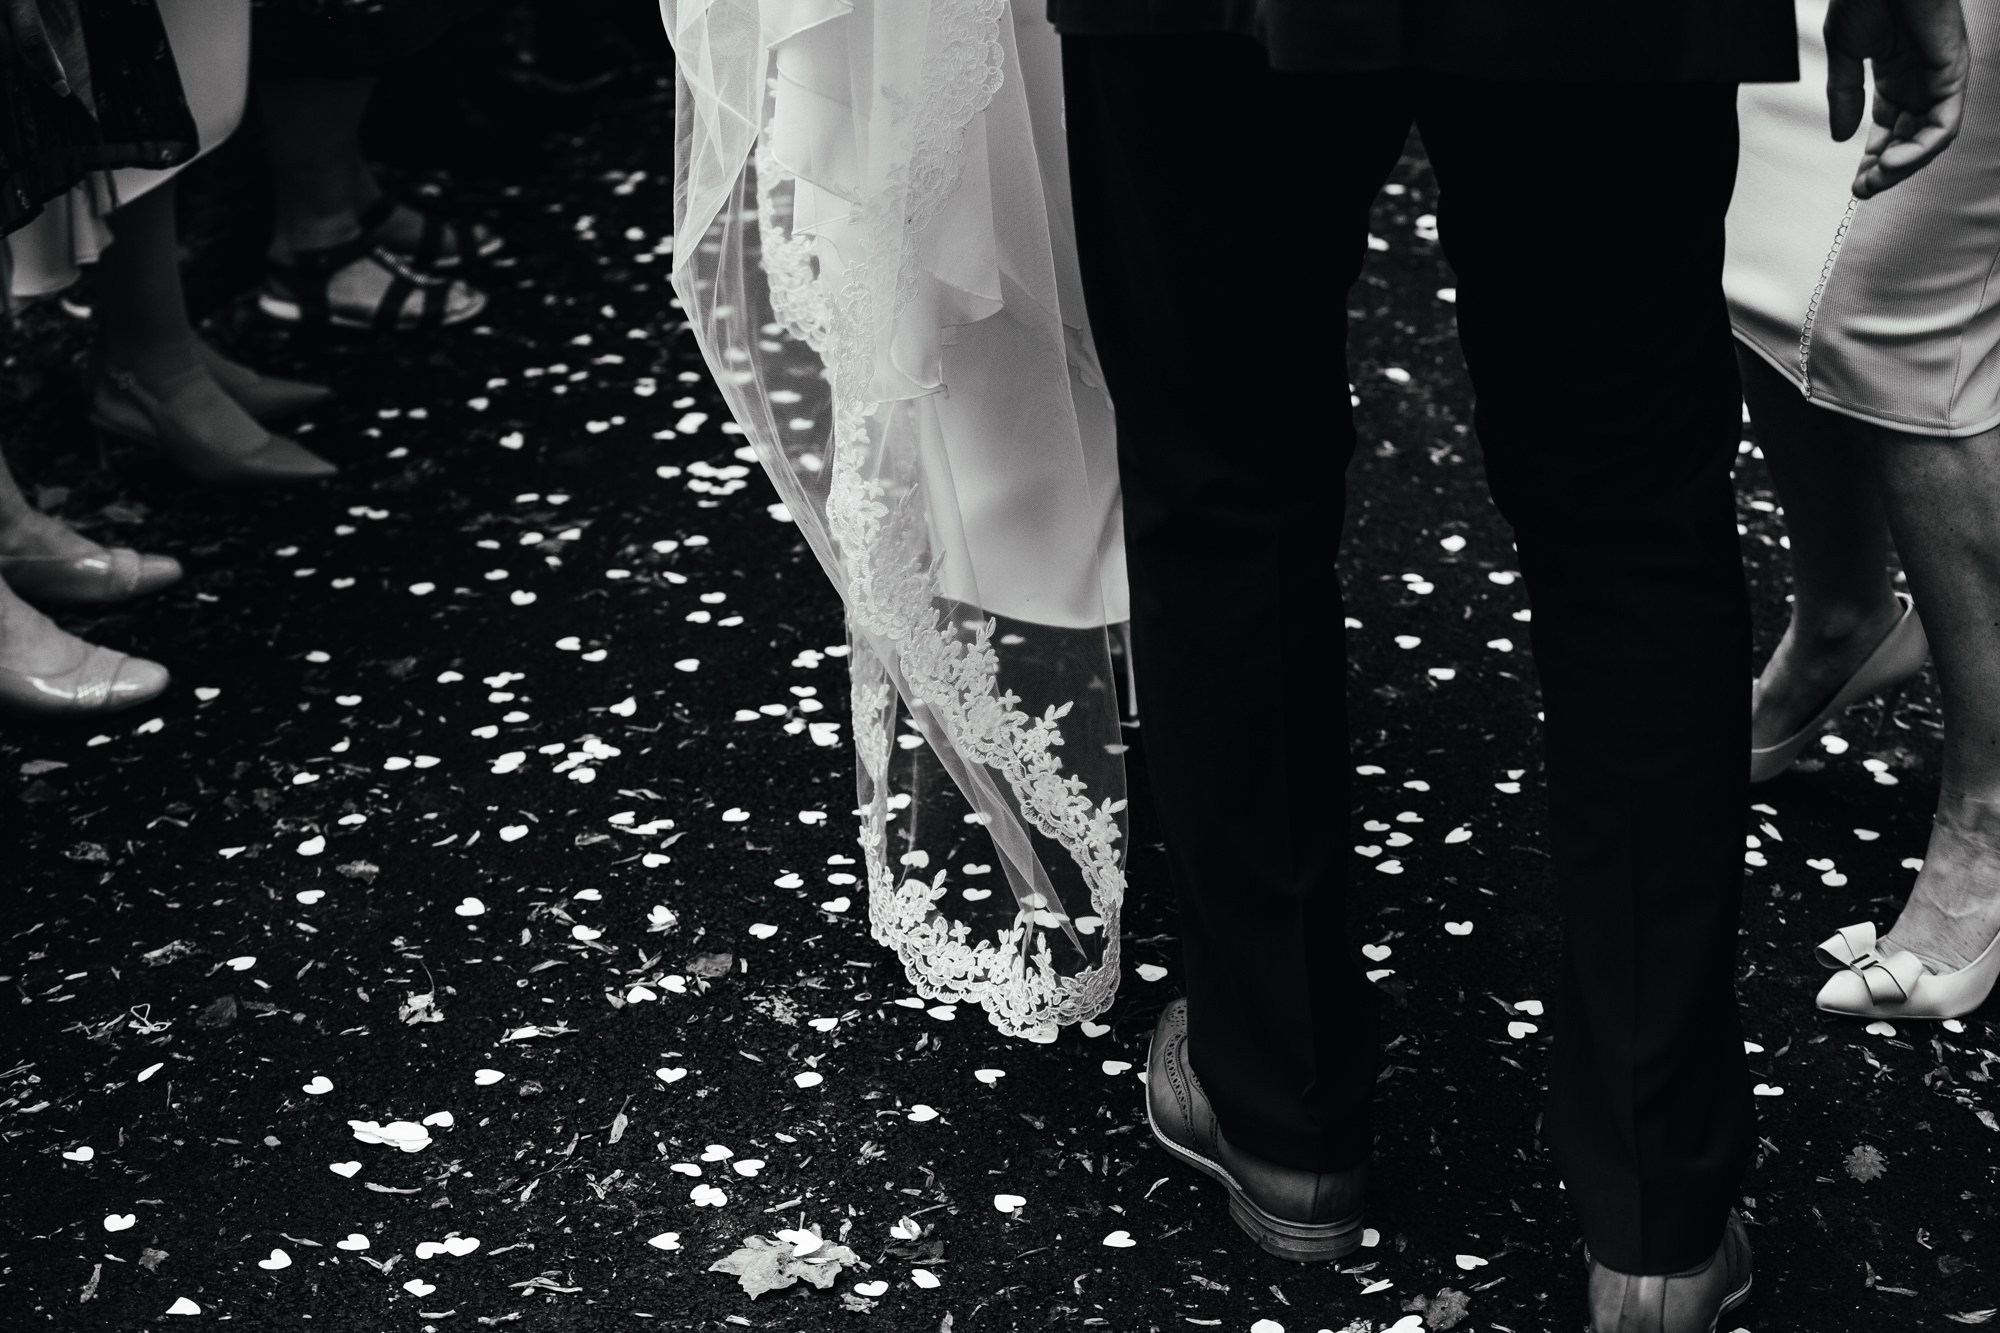 Second Wedding Photographer - Couple walking through confetti after wedding ceremony. Picture is in black and white